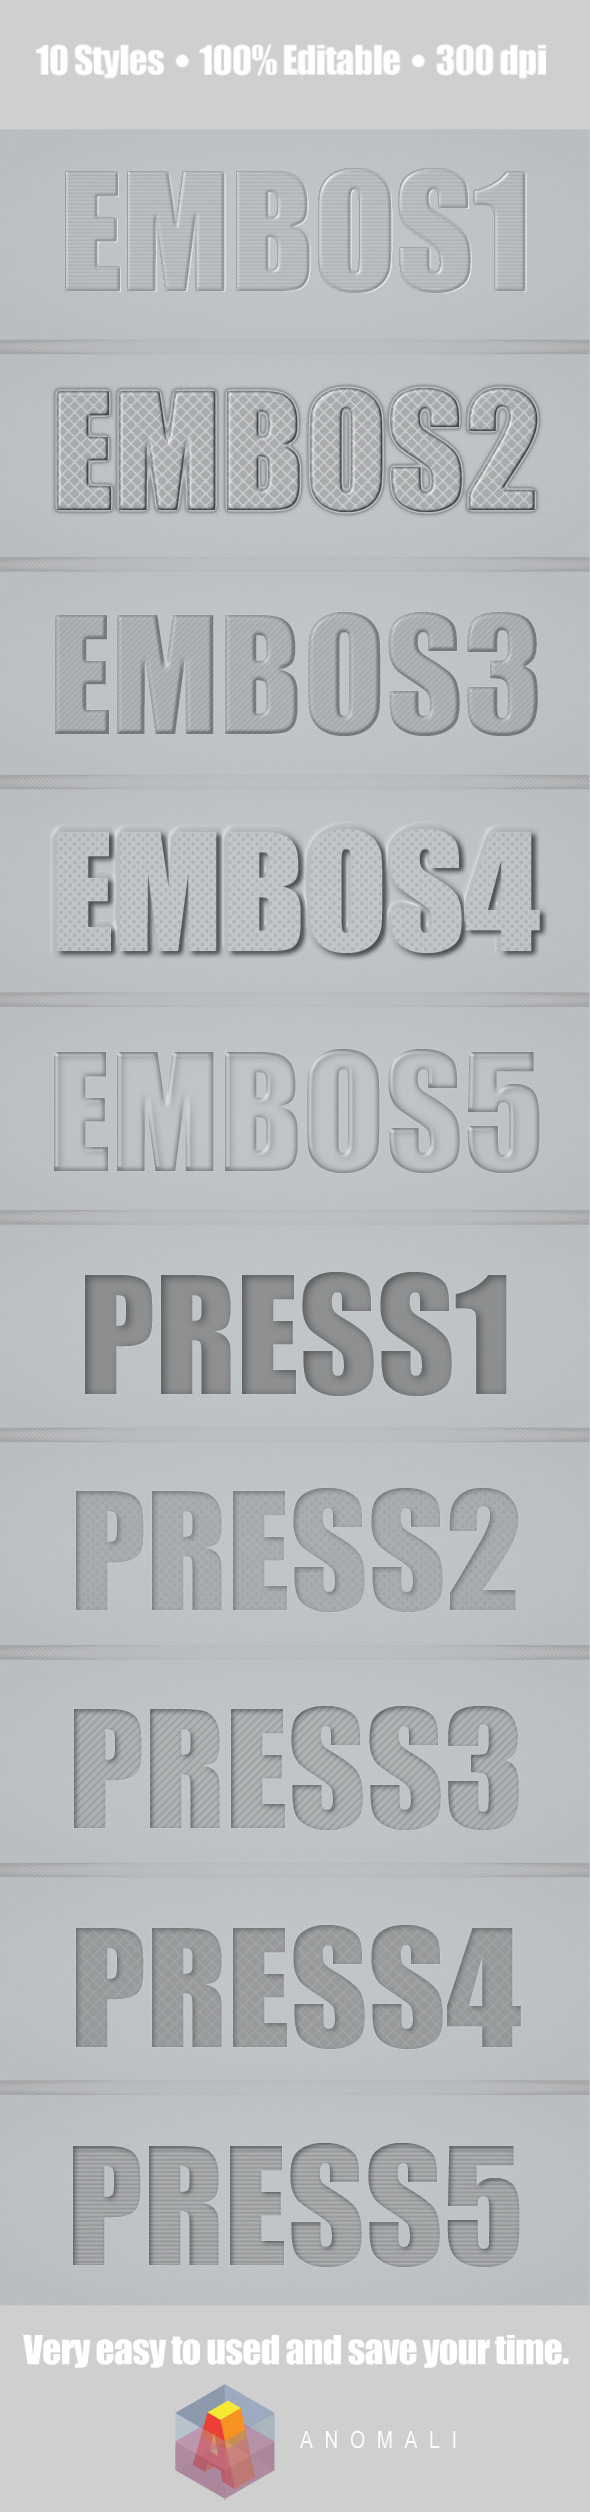 GraphicRiver Pressed and dePressed Photoshop Style 10651881